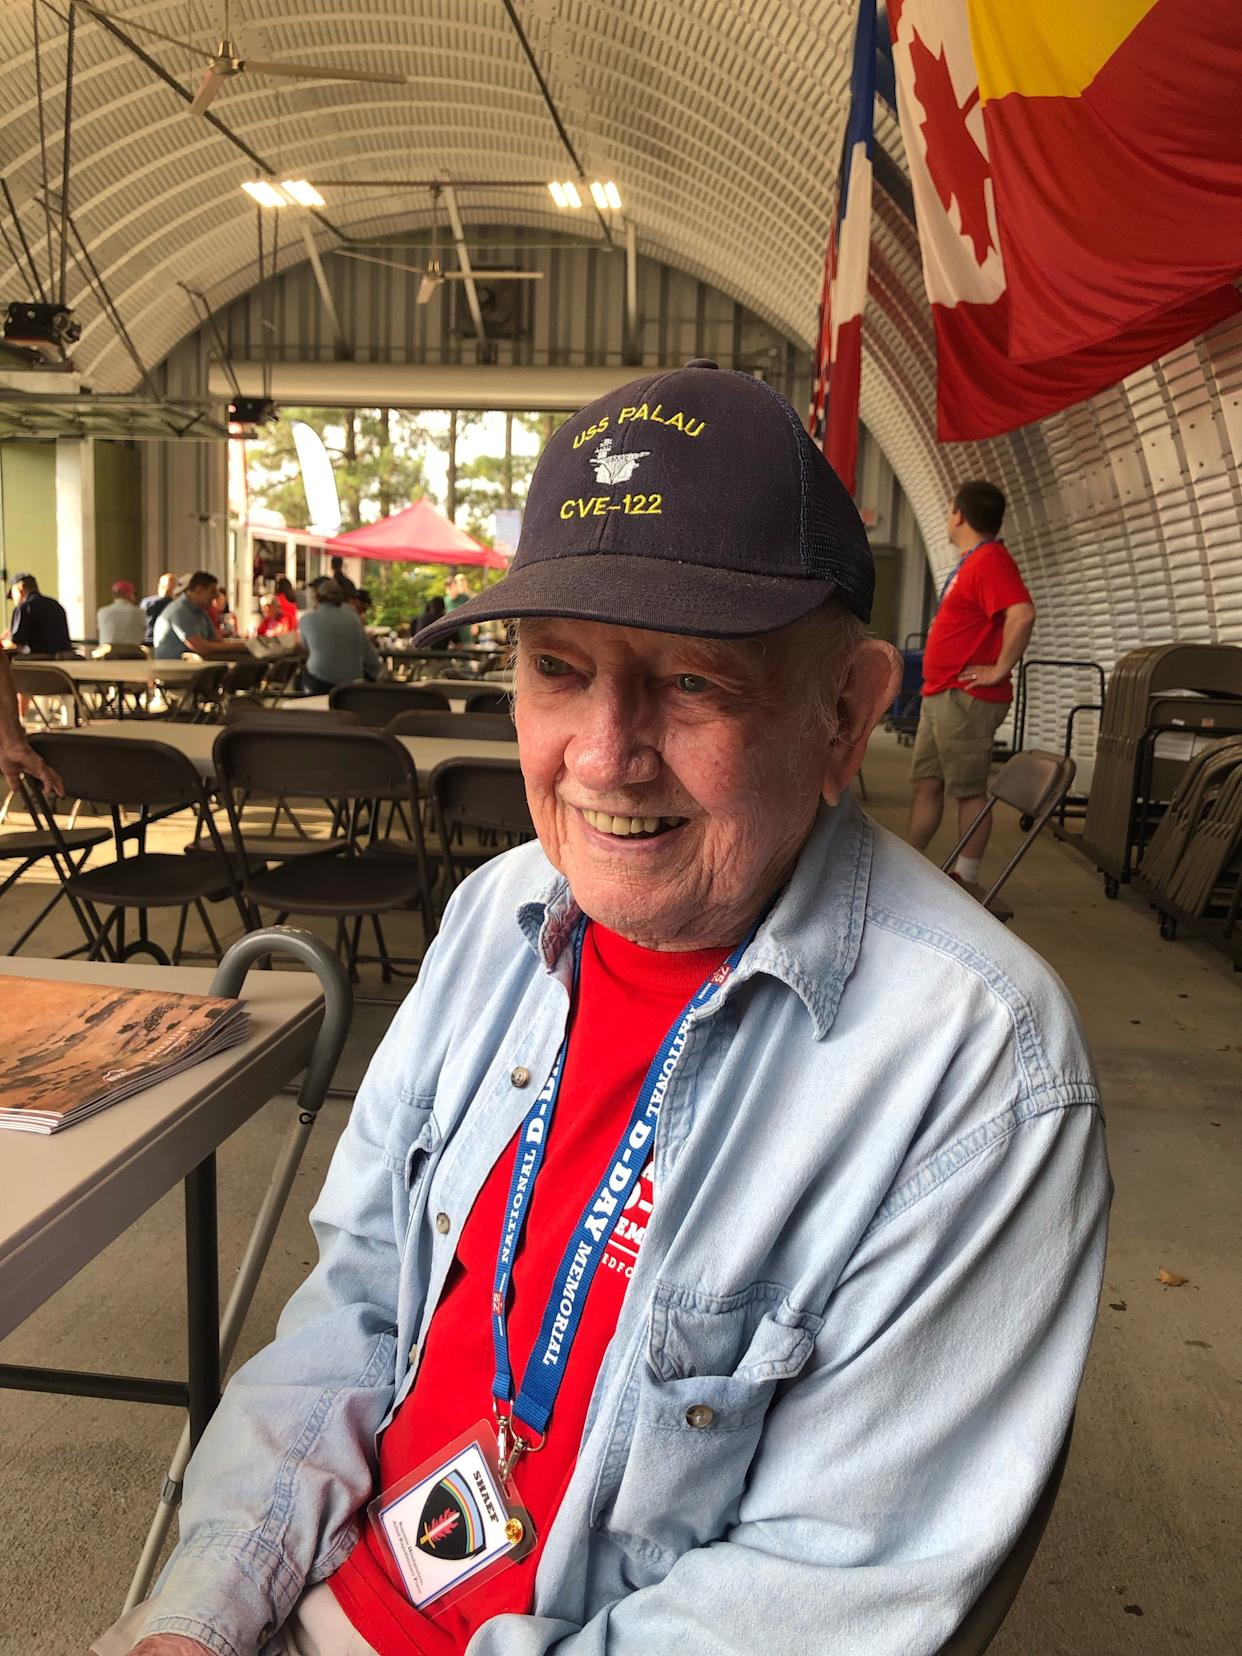 """Paul Coleman, a Korean War veteran who served in the Navy, was in Bedford, Va., for the 75th anniversary of D-Day. """"There's not that many (D-Day veterans) left,"""" Coleman said. """"This will be the last one."""""""